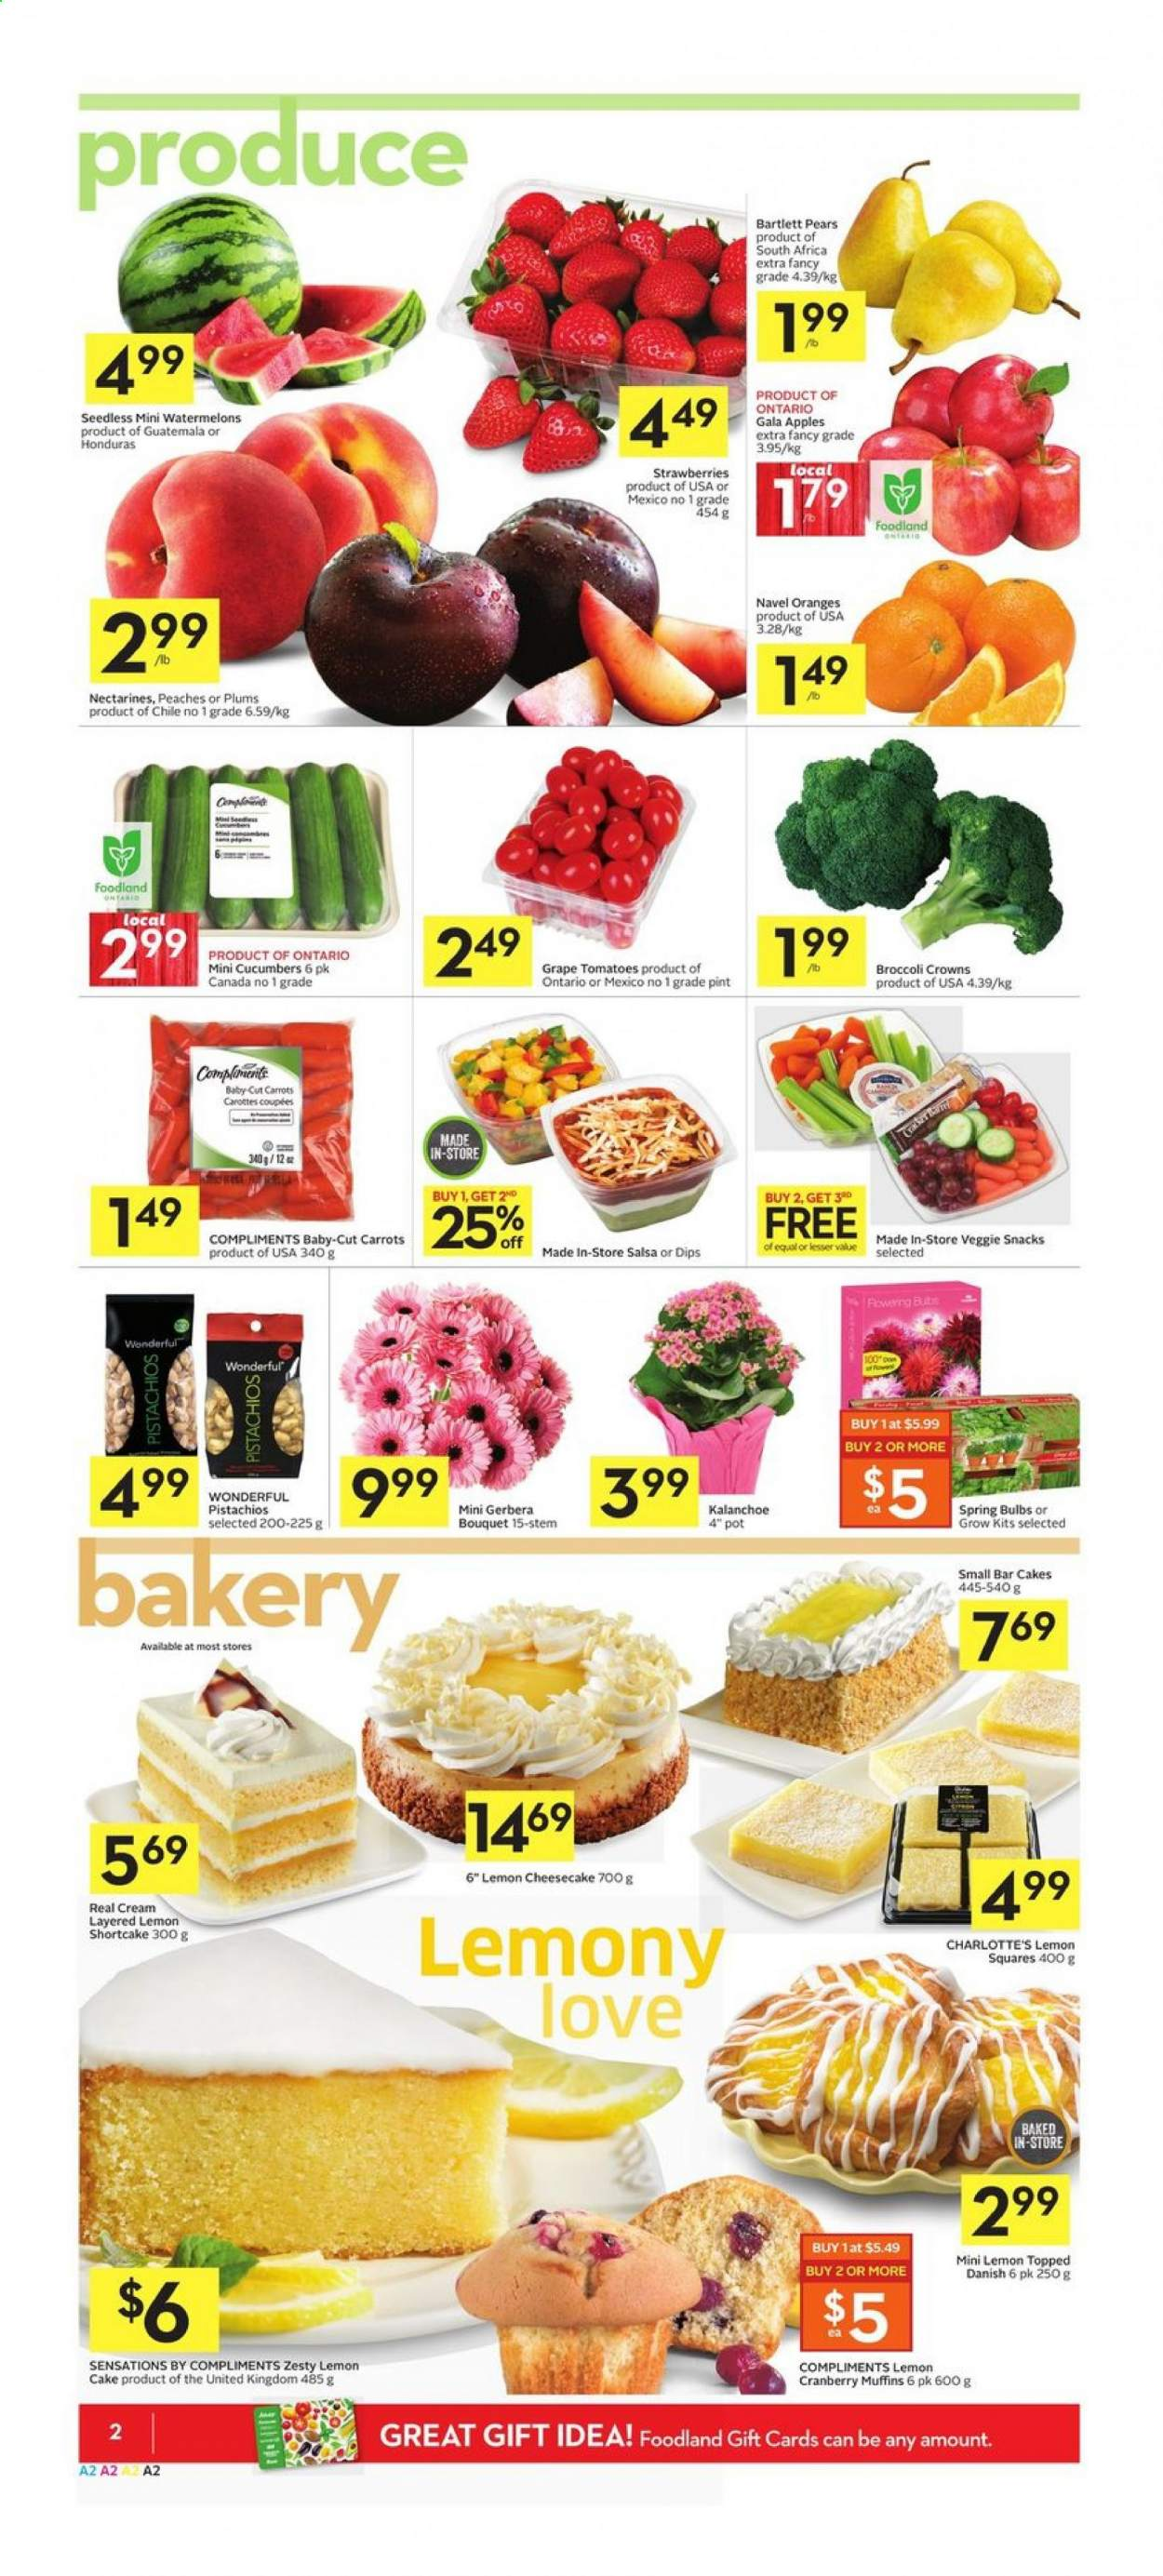 Foodland Flyer  - March 26, 2020 - April 01, 2020. Page 2.